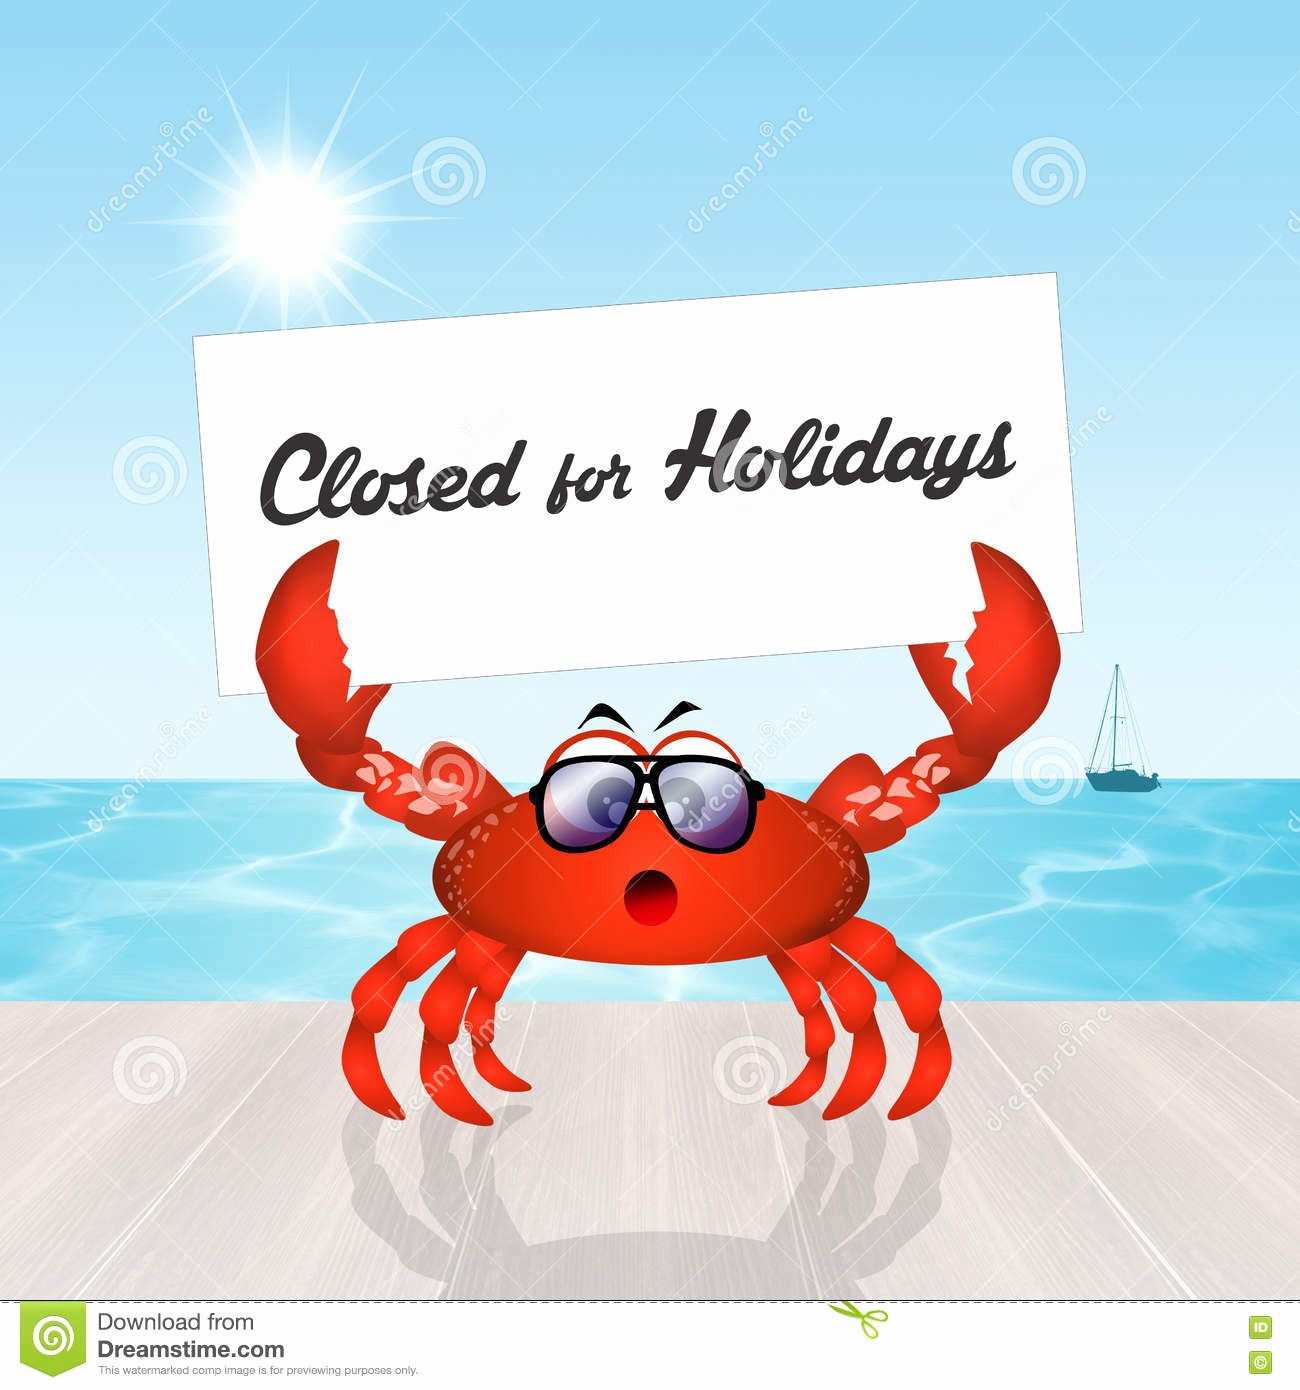 Closed for the Holidays Sign Lovely Closed for Holidays Stock Illustration Image